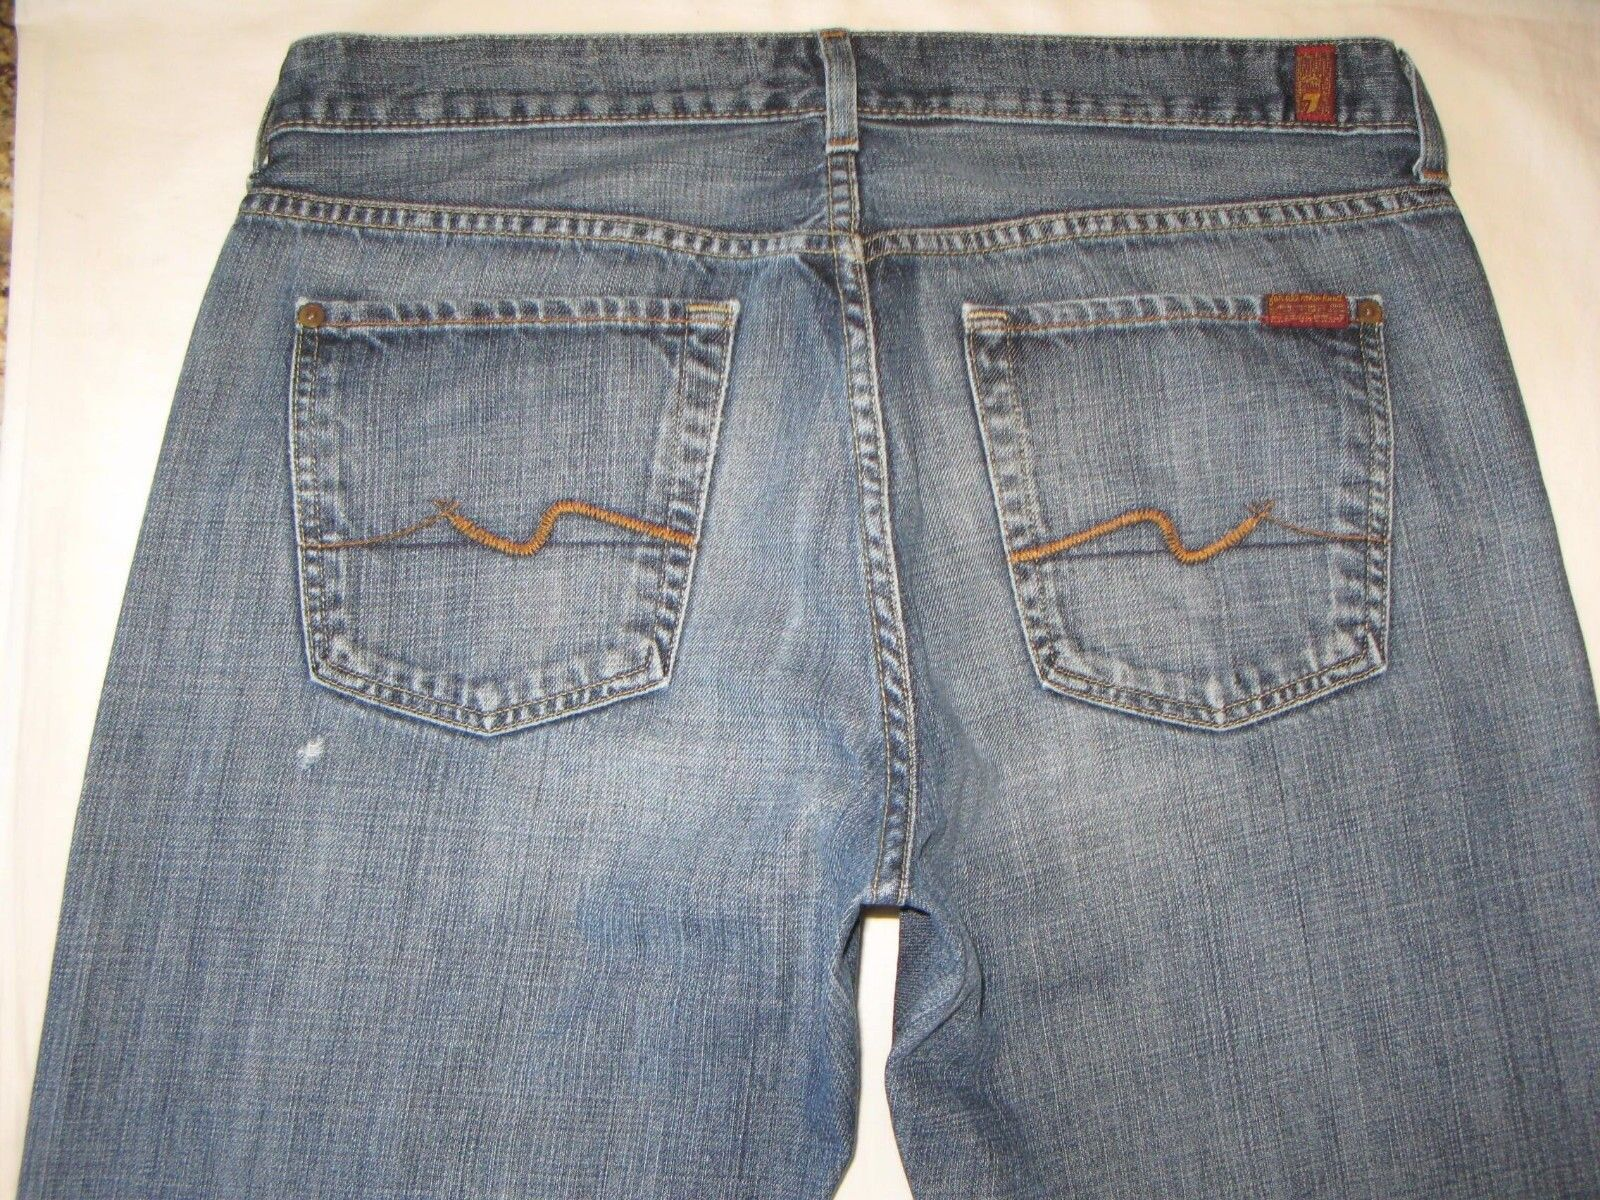 7 For all Mankind Men's Relaxed Jeans  34 X 31 100% Cotton Distressed Wash